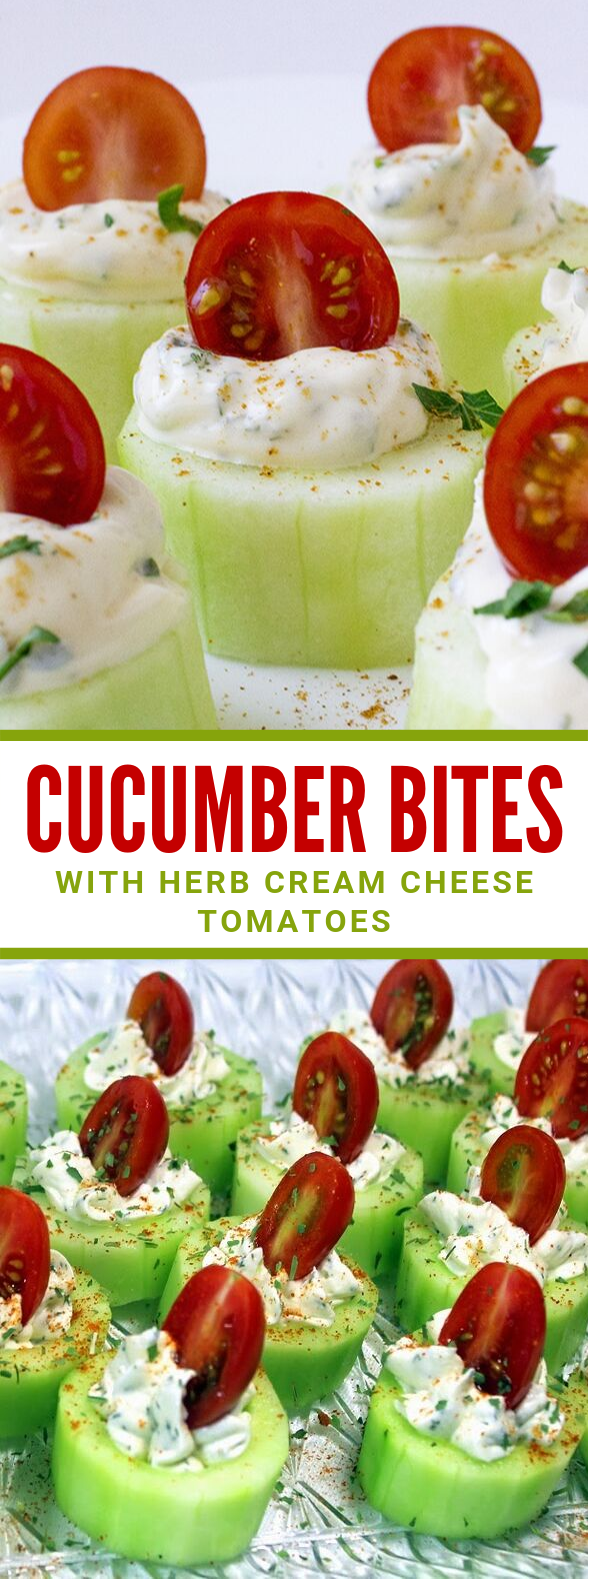 CUCUMBER BITES (WITH HERB CREAM CHEESE TOMATOES) #vegetarian #veggies